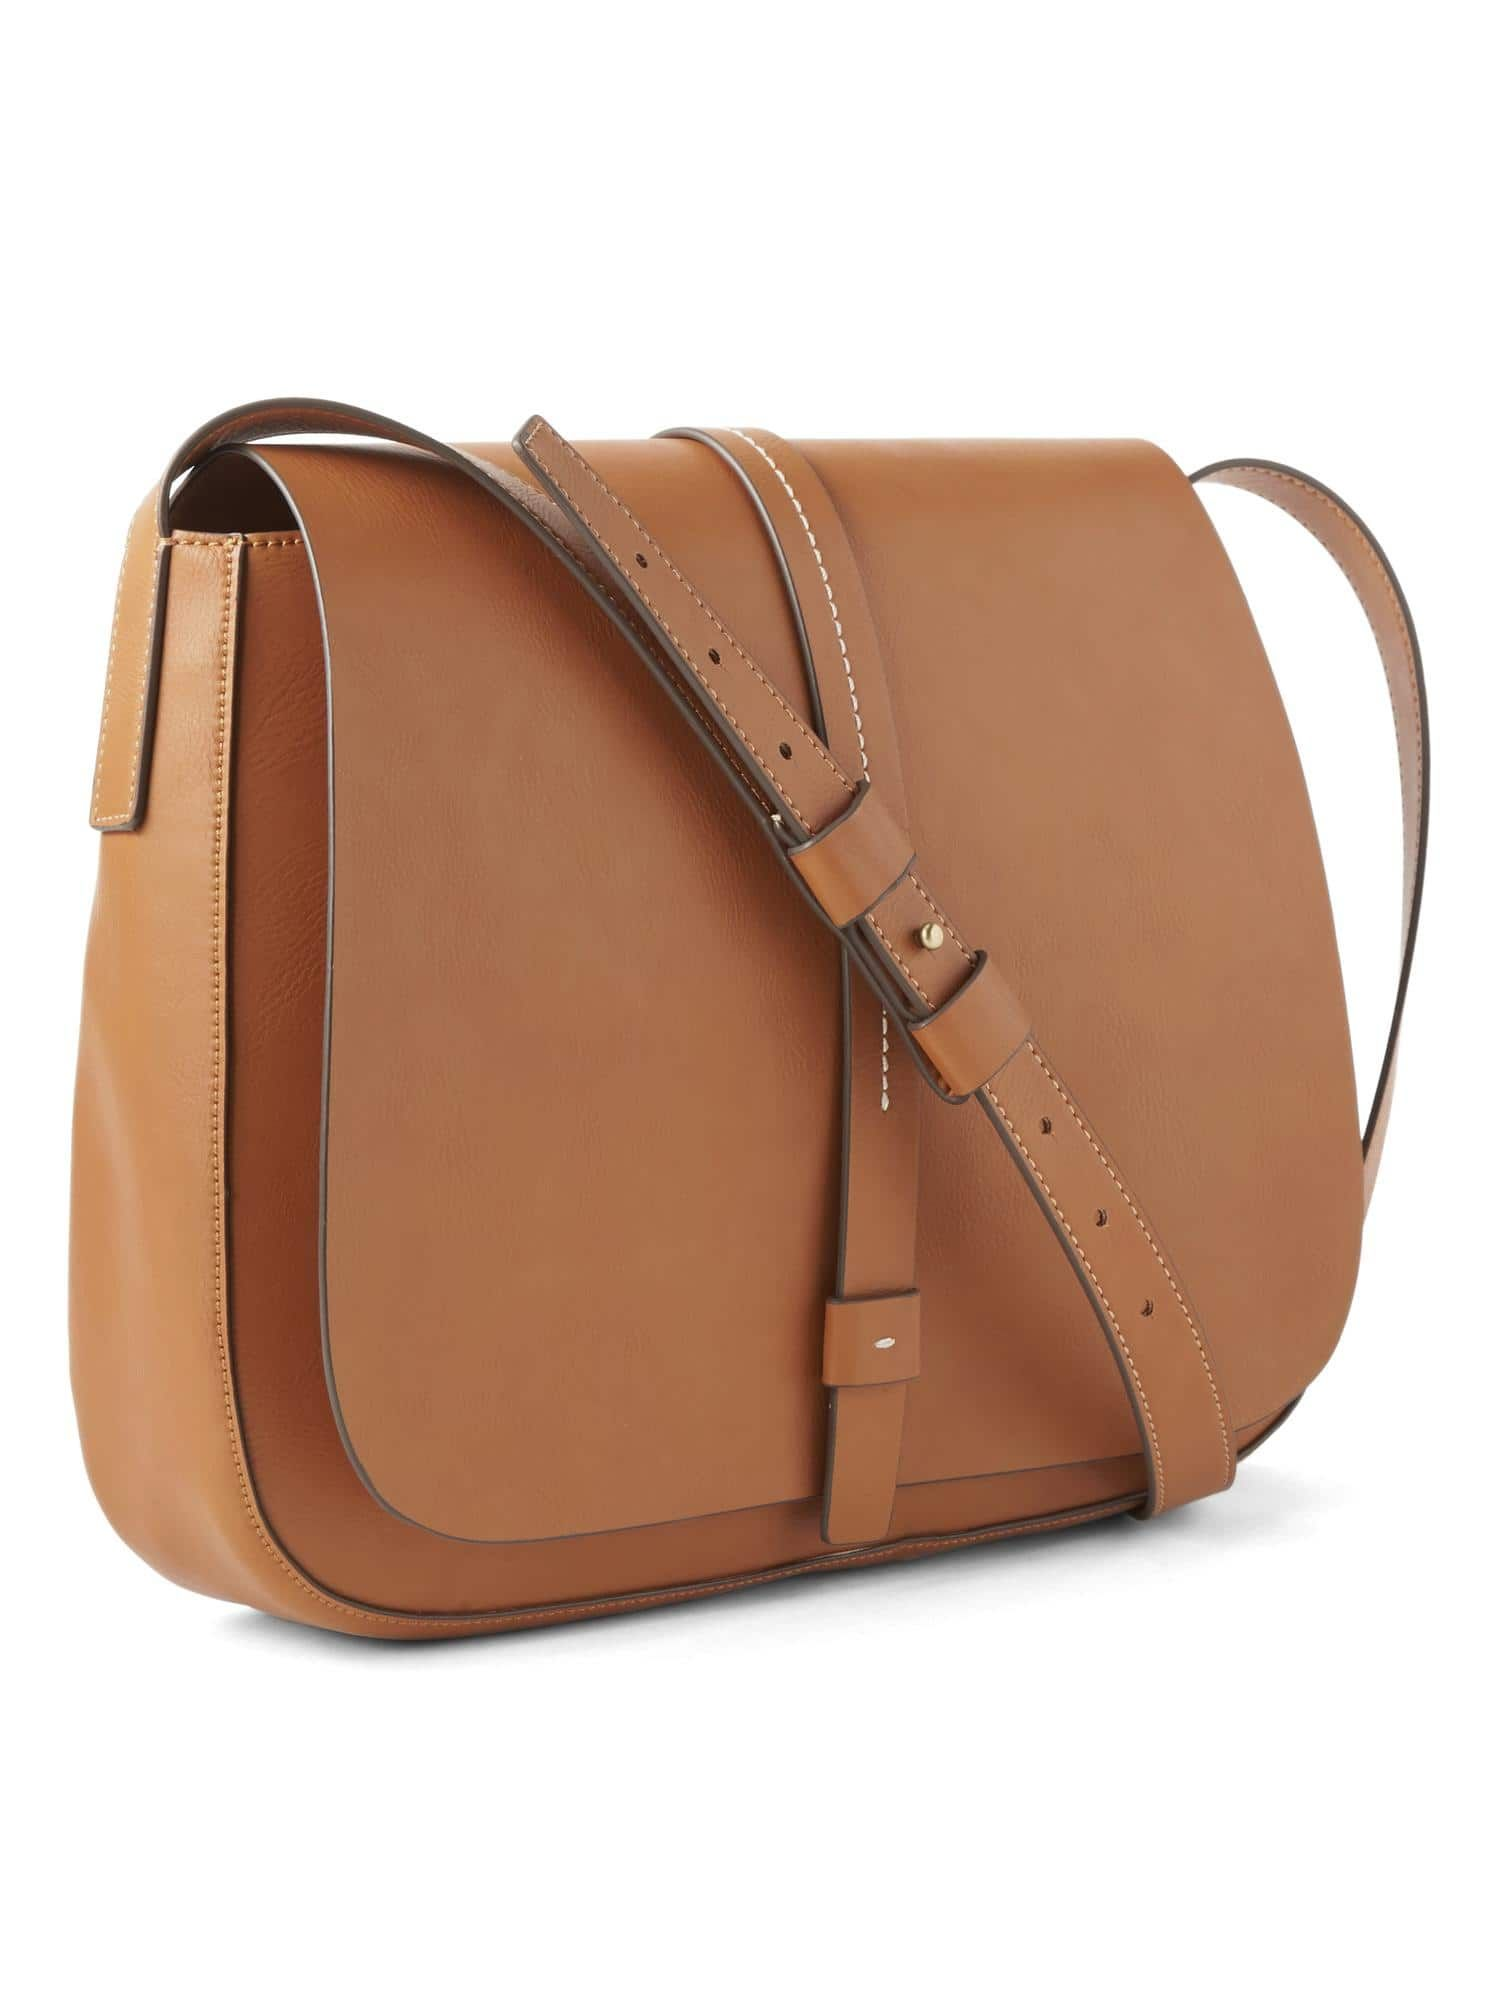 54.95 Crossbody Saddle Bag 7787e0248fc62